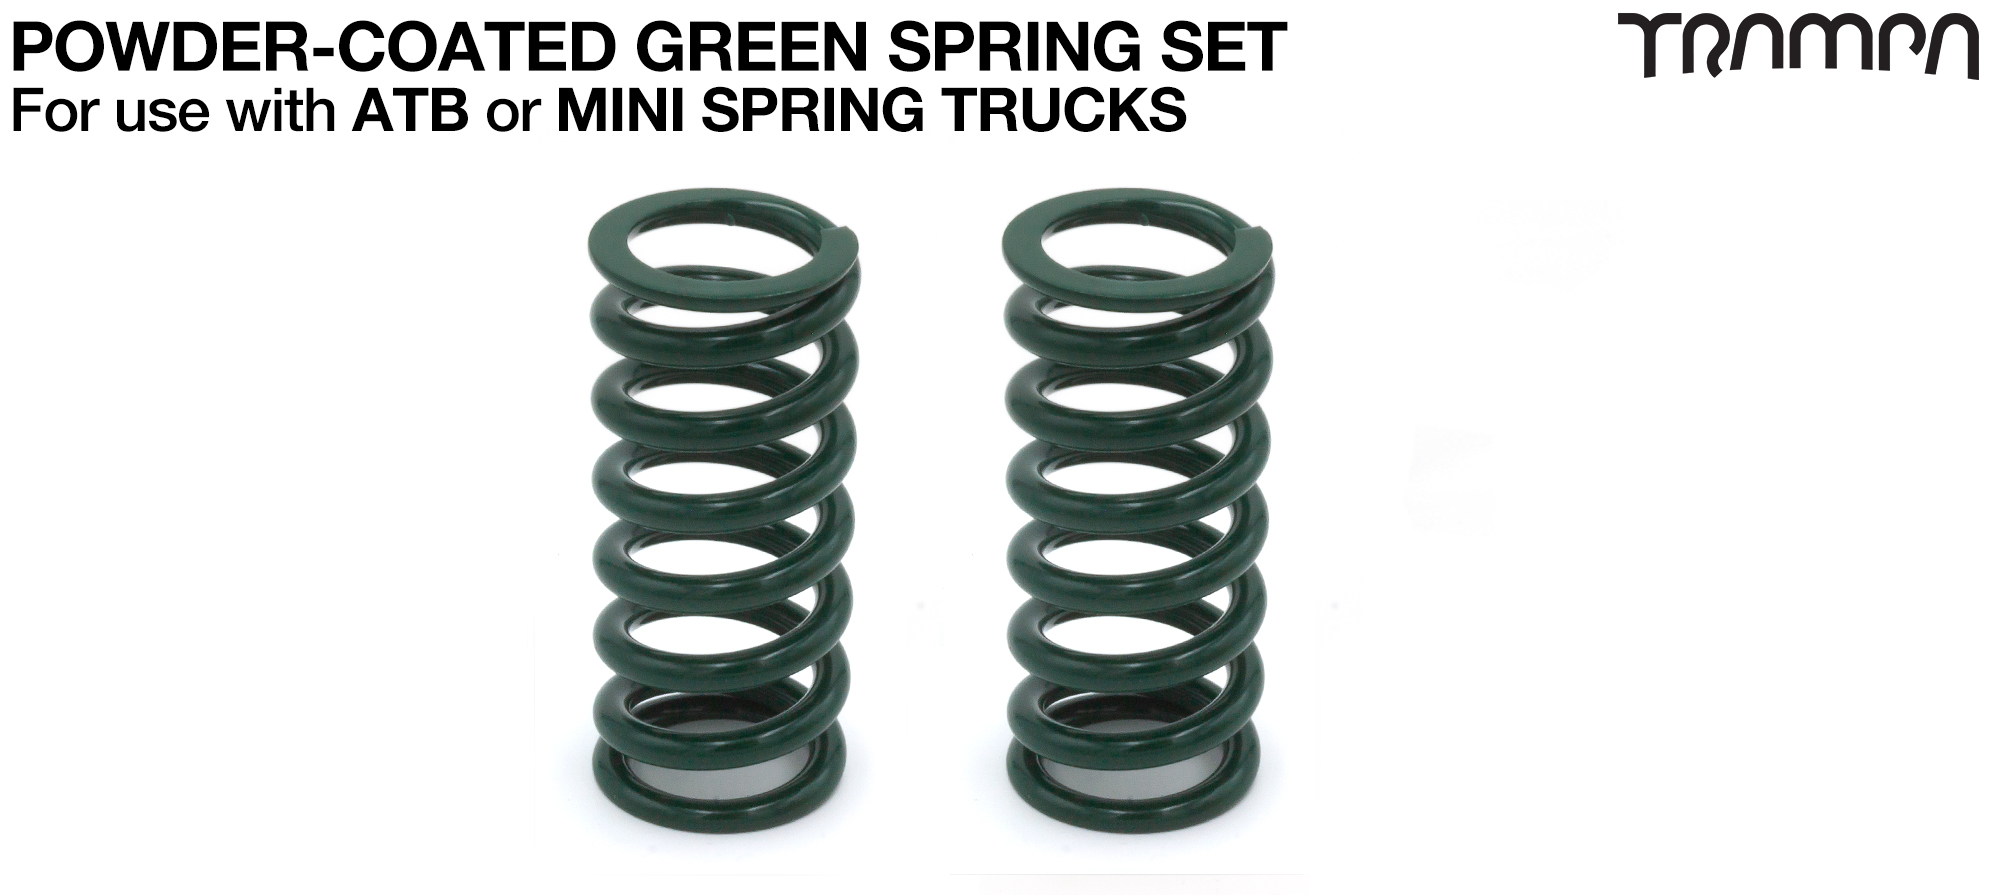 GREEN Powder coated Steel Springs x2